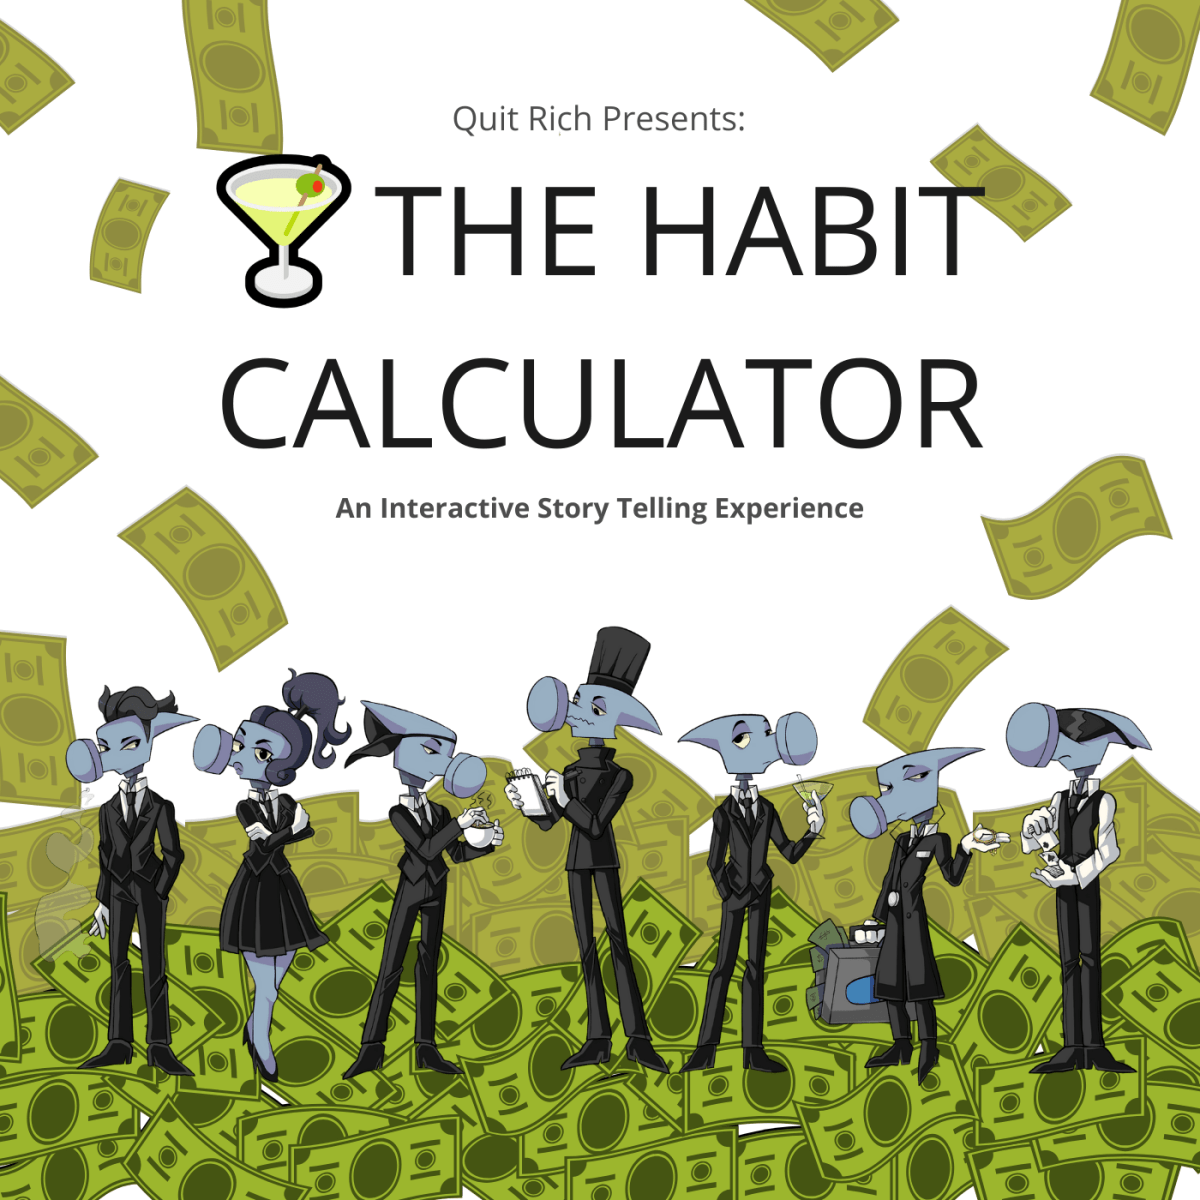 The Habit Calculator by Quit Rich